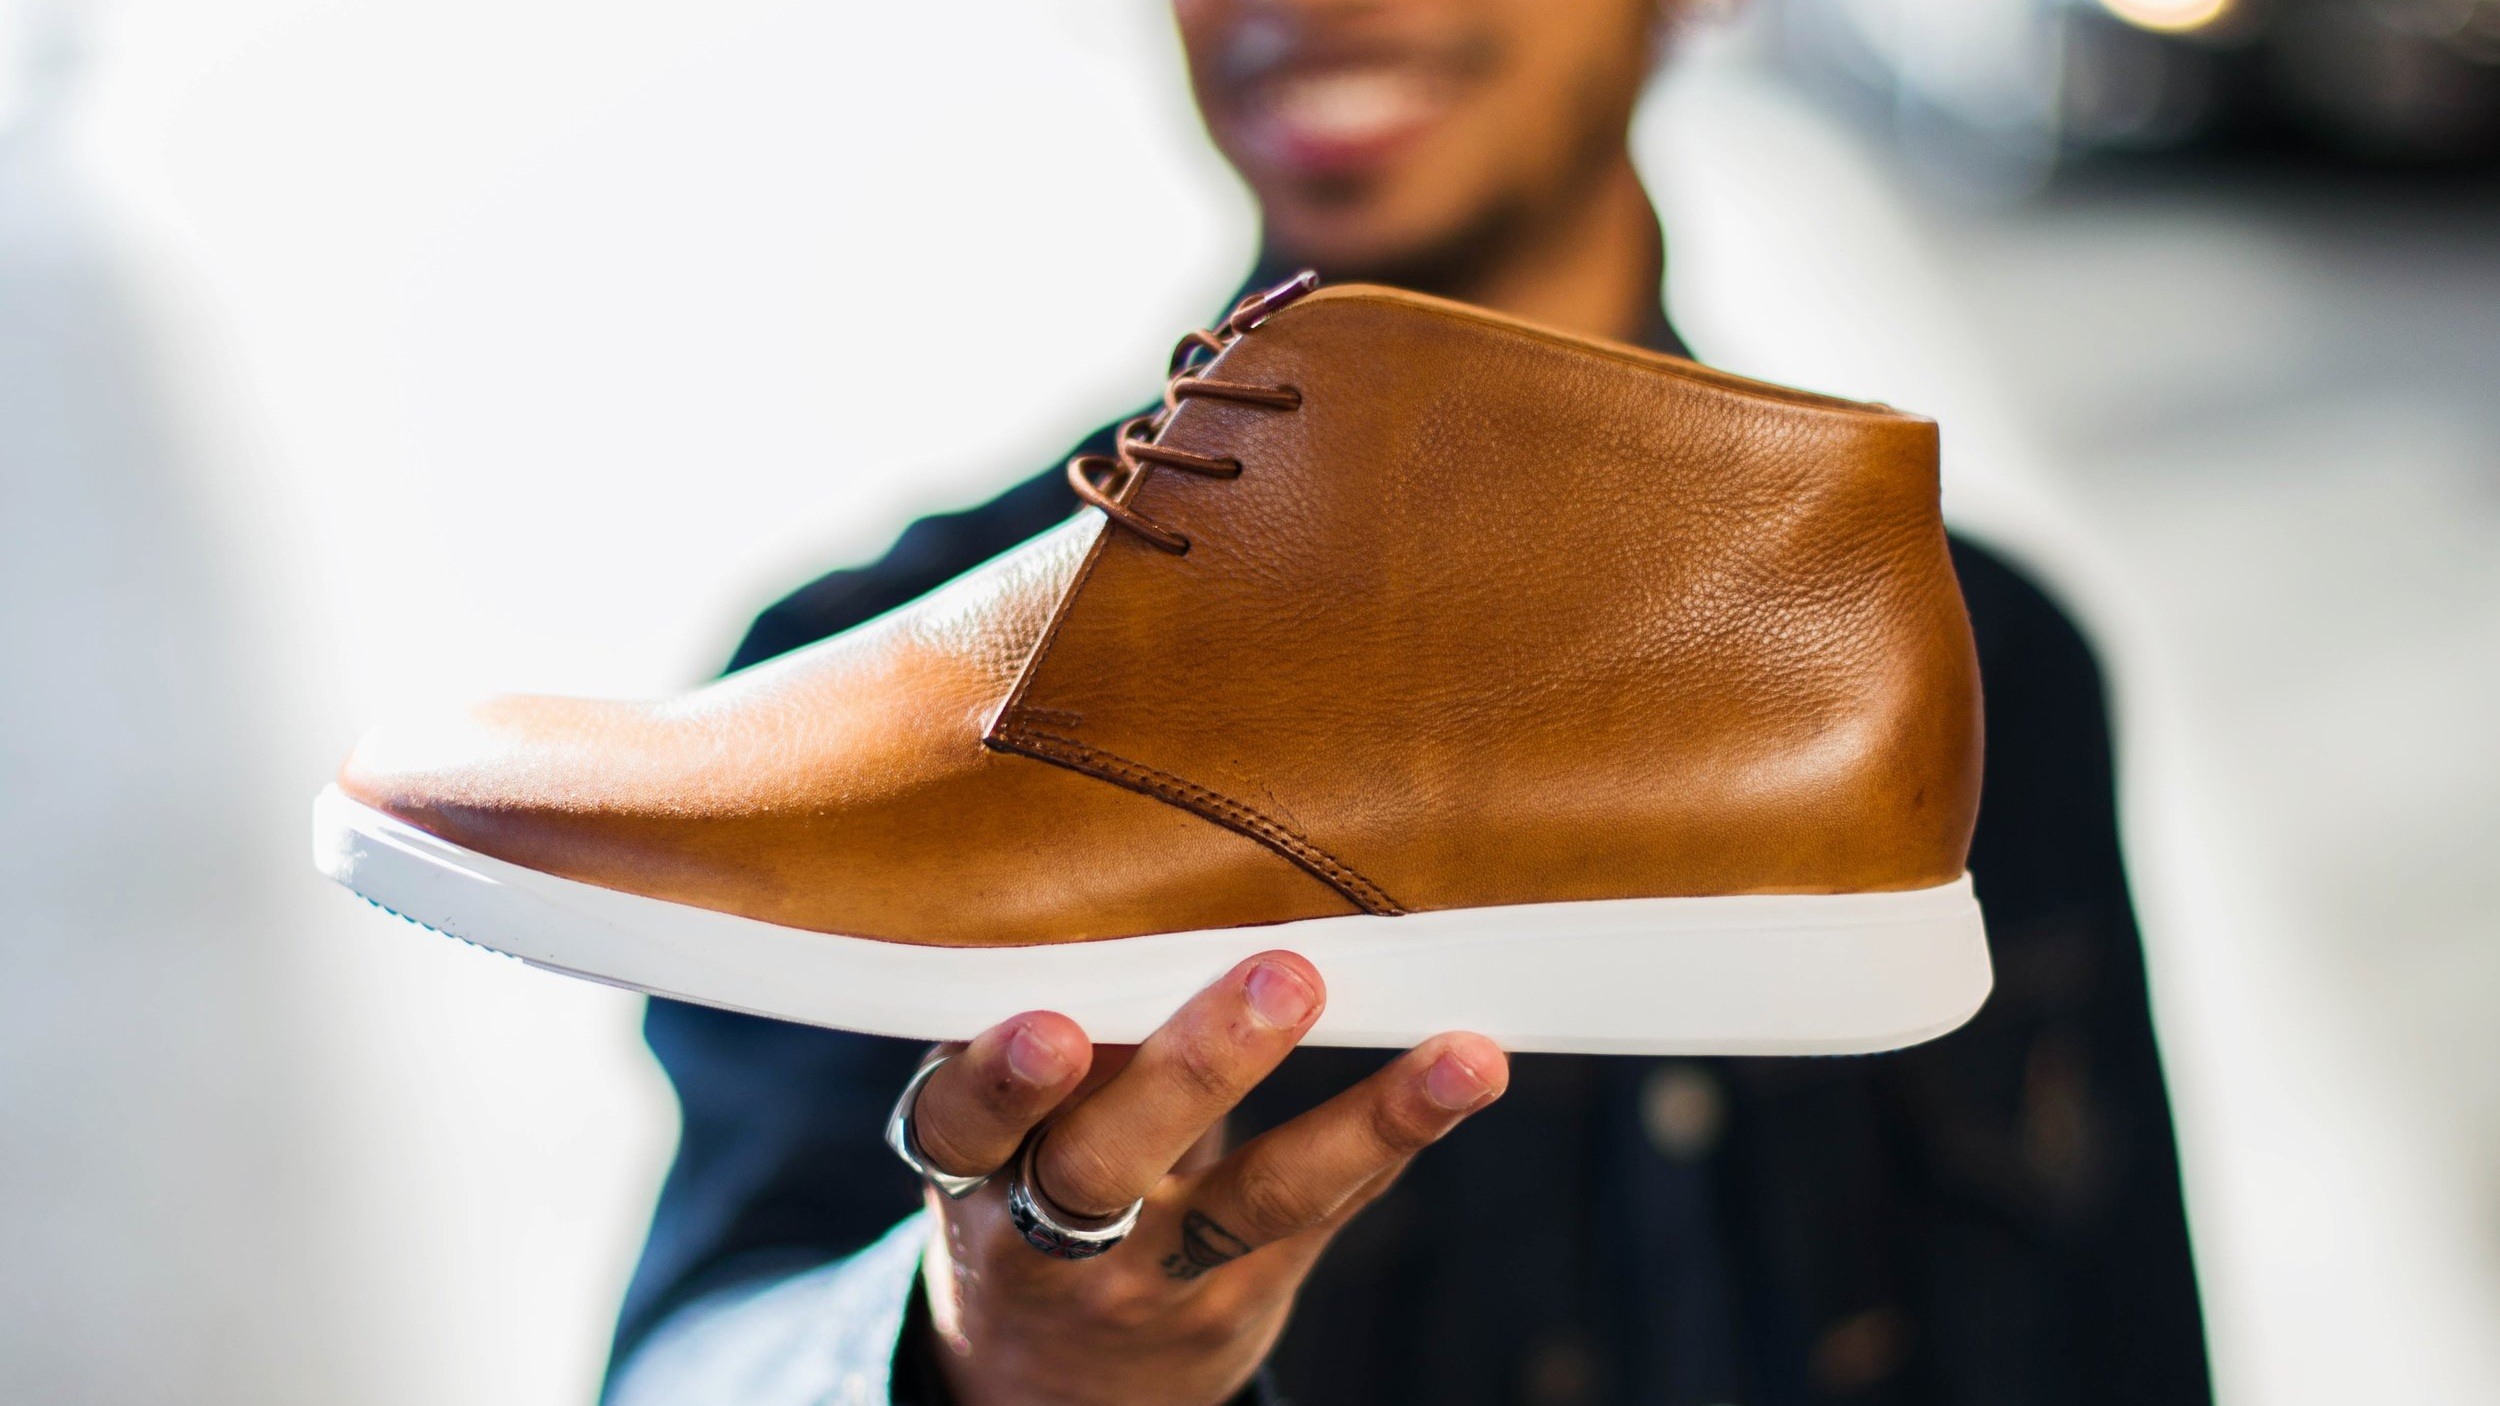 rocketpod-leather-chukka-sneaker-2.jpg